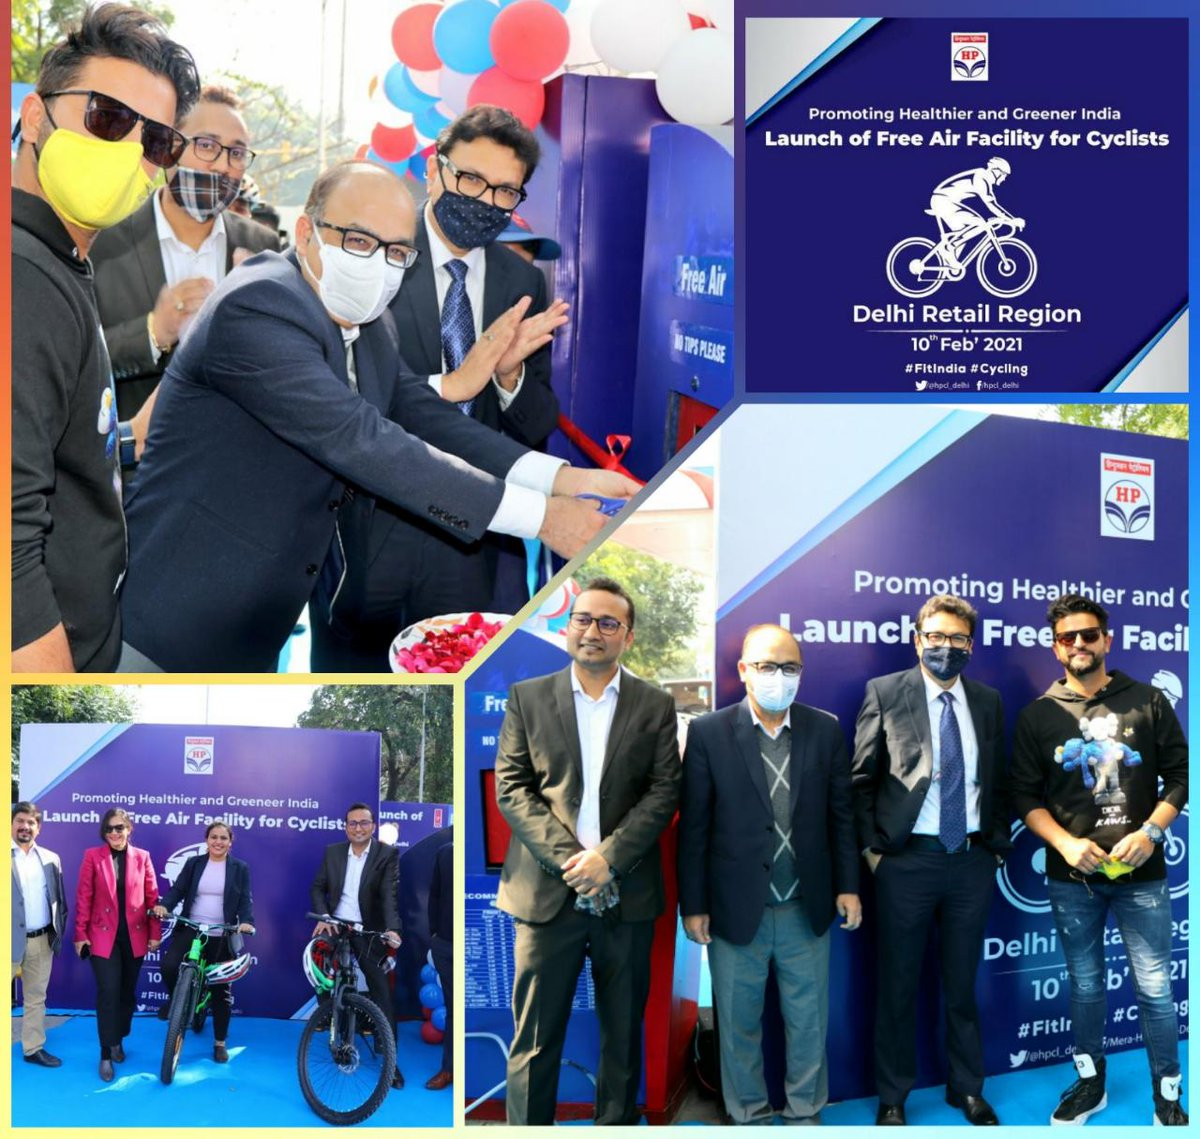 Air Facility for #Cyclists at 14 Retail Outlets of @HPCL in #NewDelhi launched by @ImRaina. A unique initiative to promote a #HealthyIndia #CleanIndia &  #GreenIndia